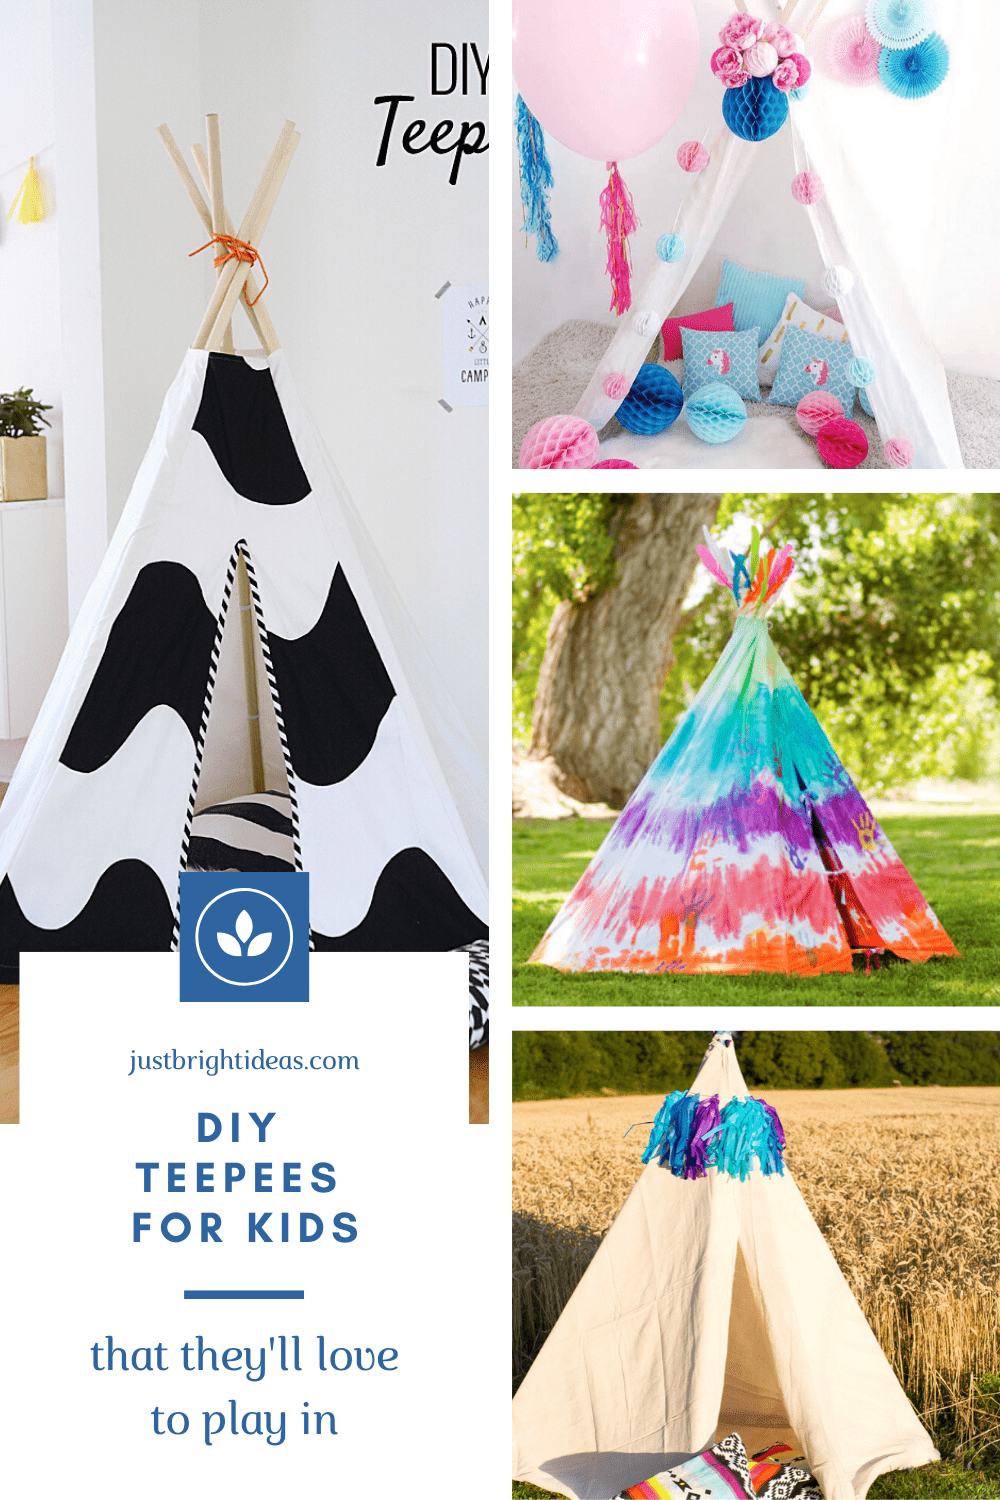 We love these DIY teepees for kids - they're perfect for playing in, snuggling up in and reading in